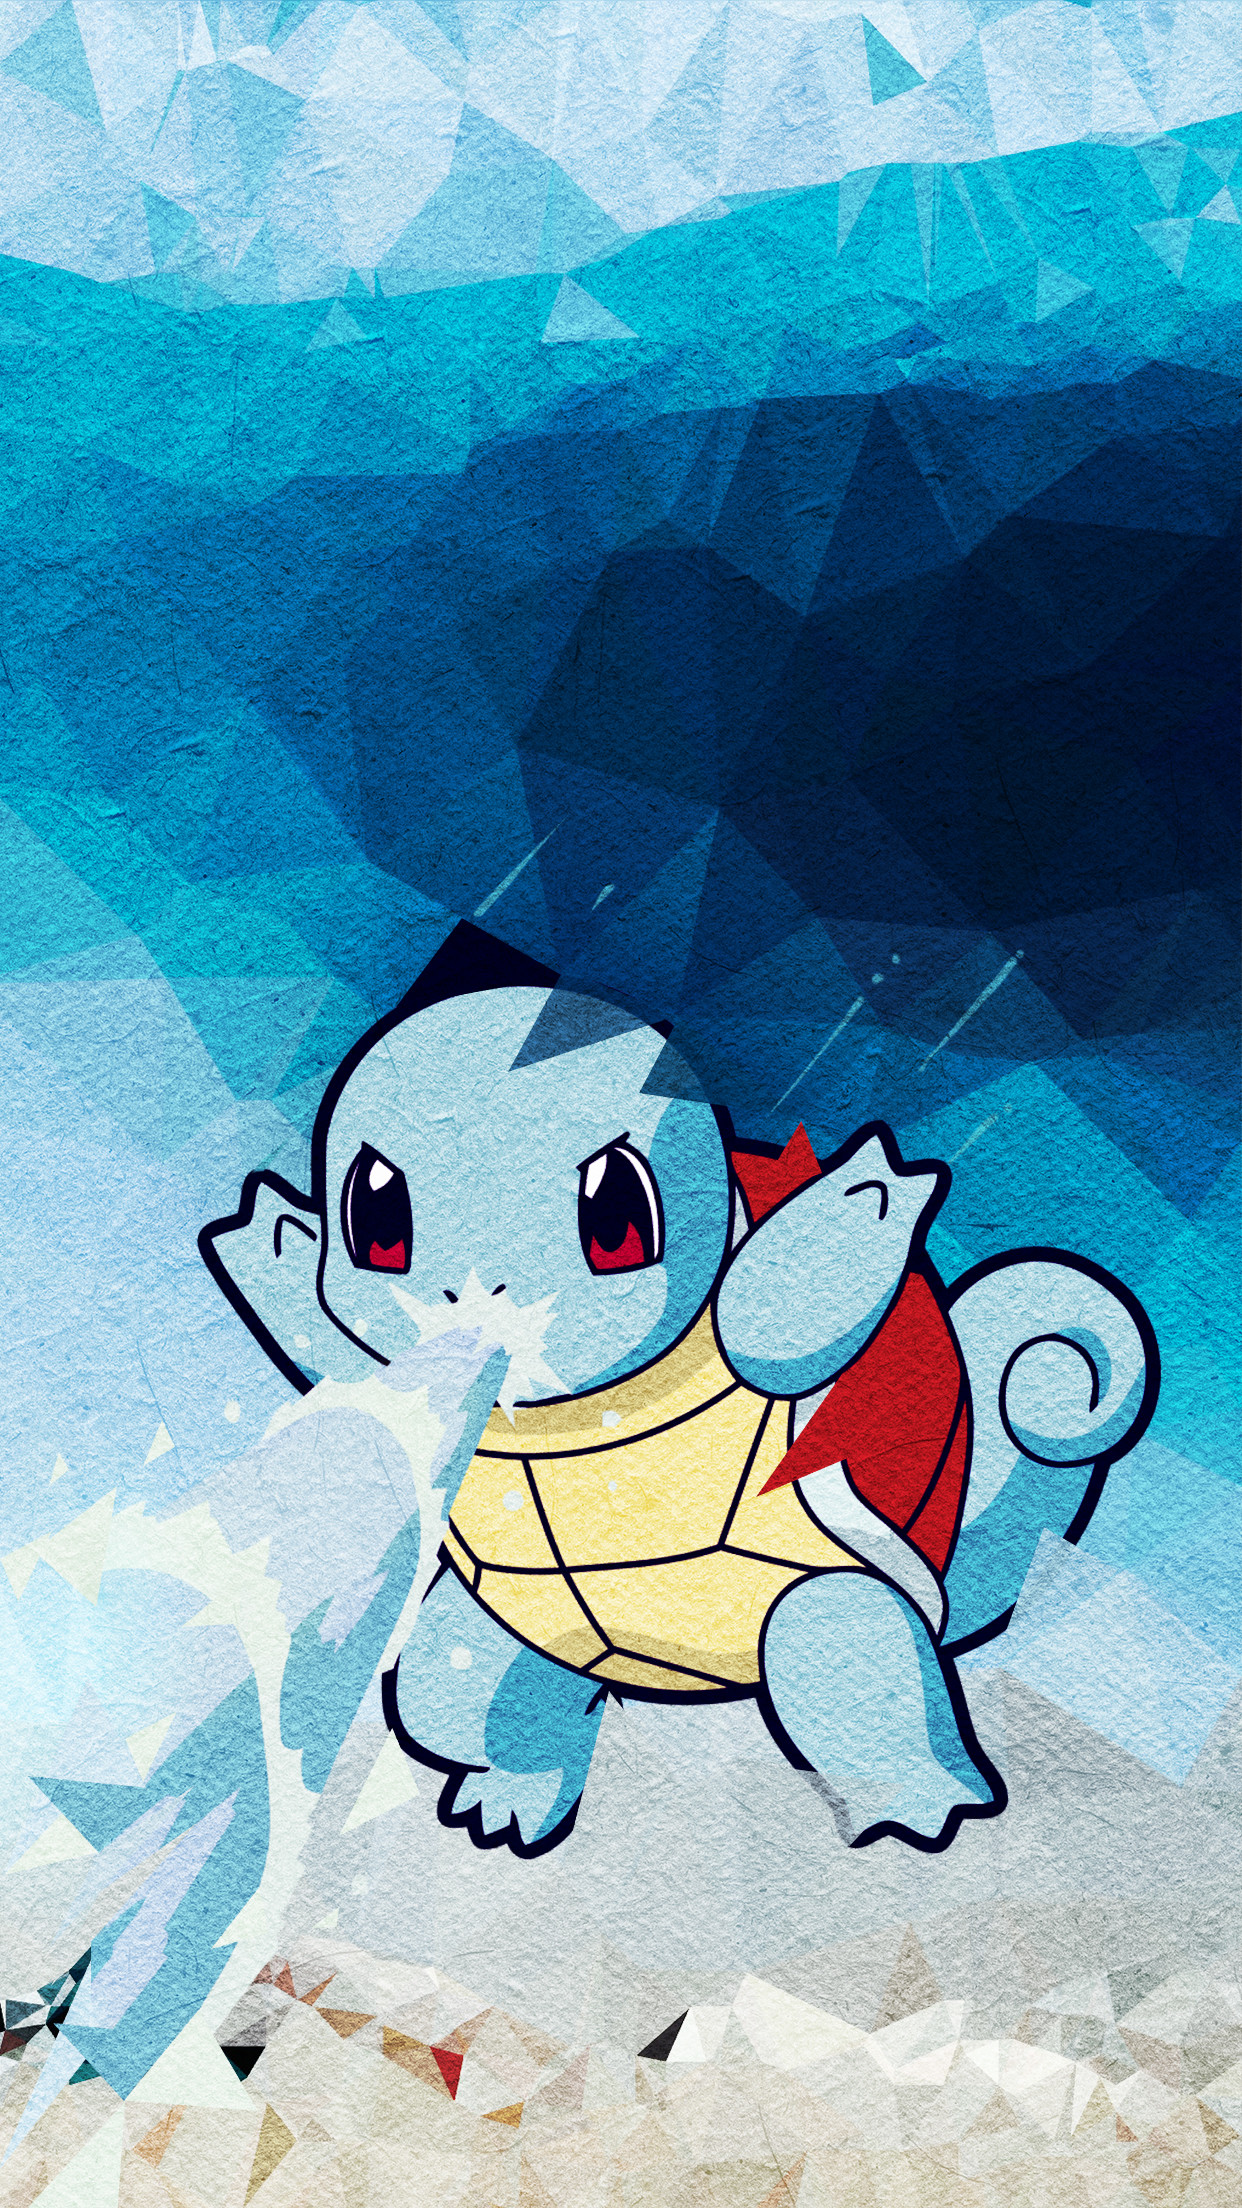 Trigraphy-Wallpaper-Squirtel